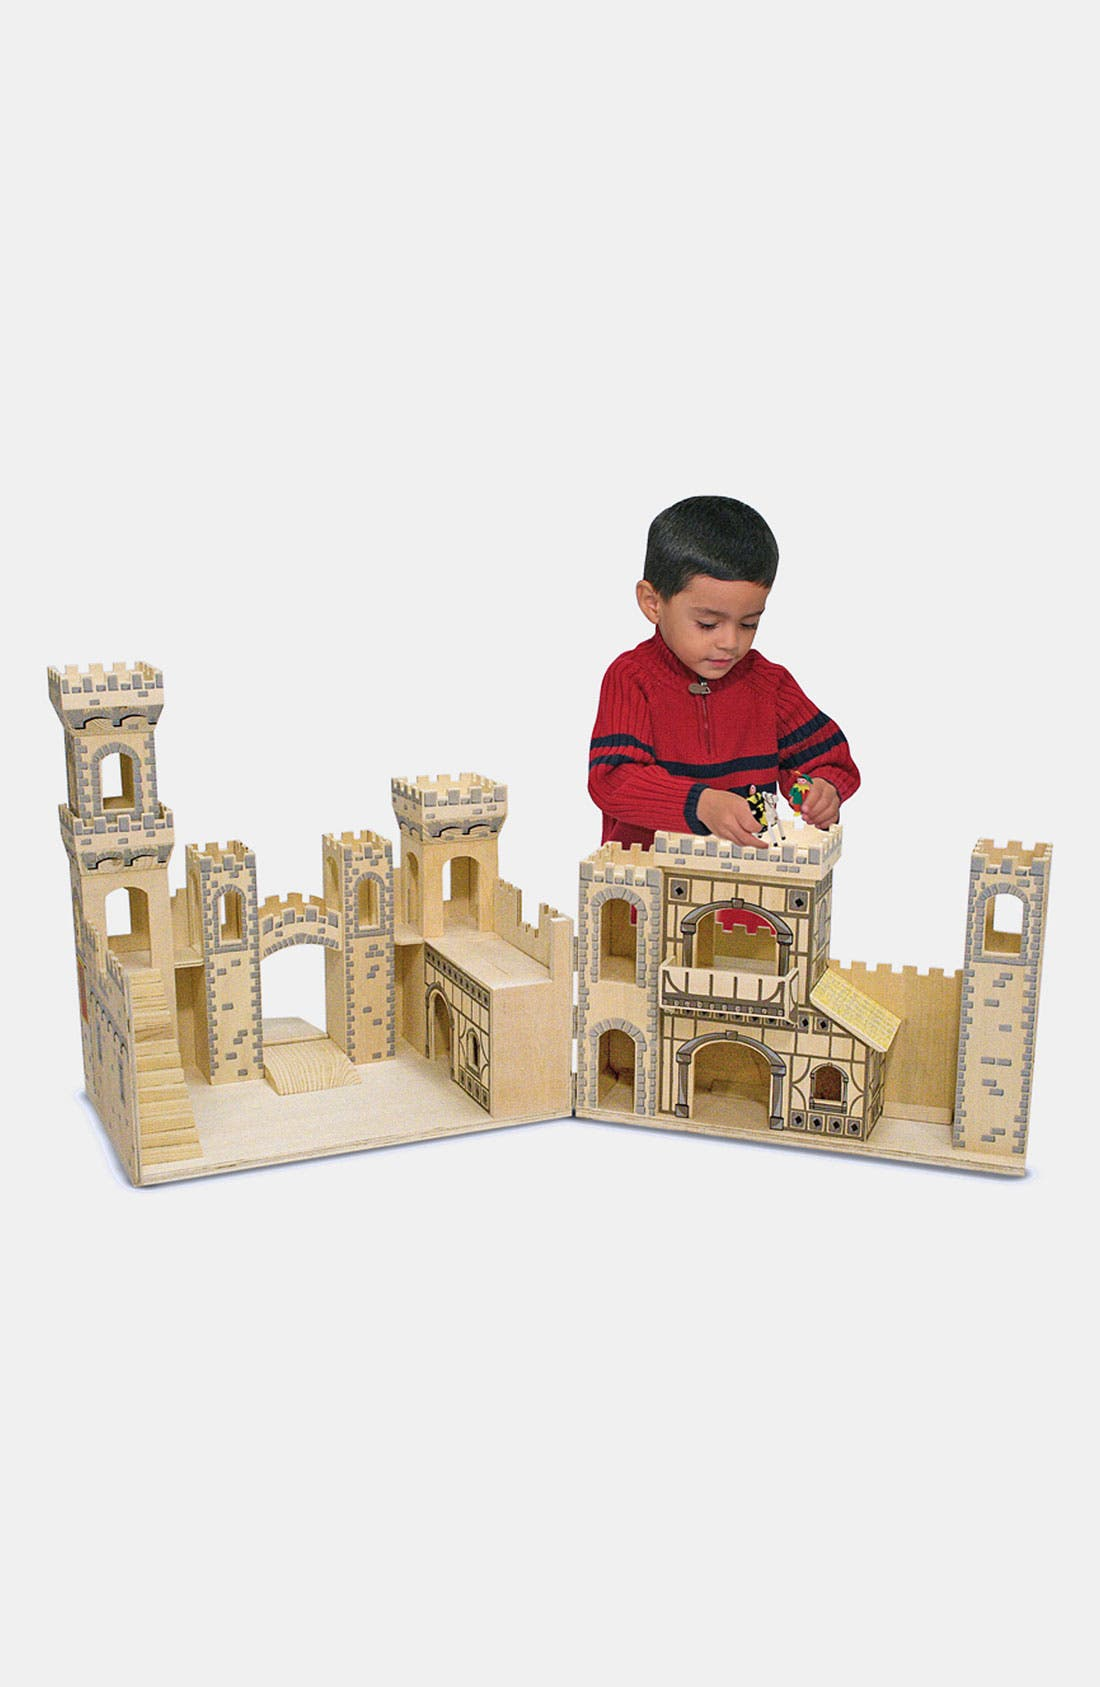 Alternate Image 1 Selected - Melissa & Doug Wood Play Castle (Online Only)